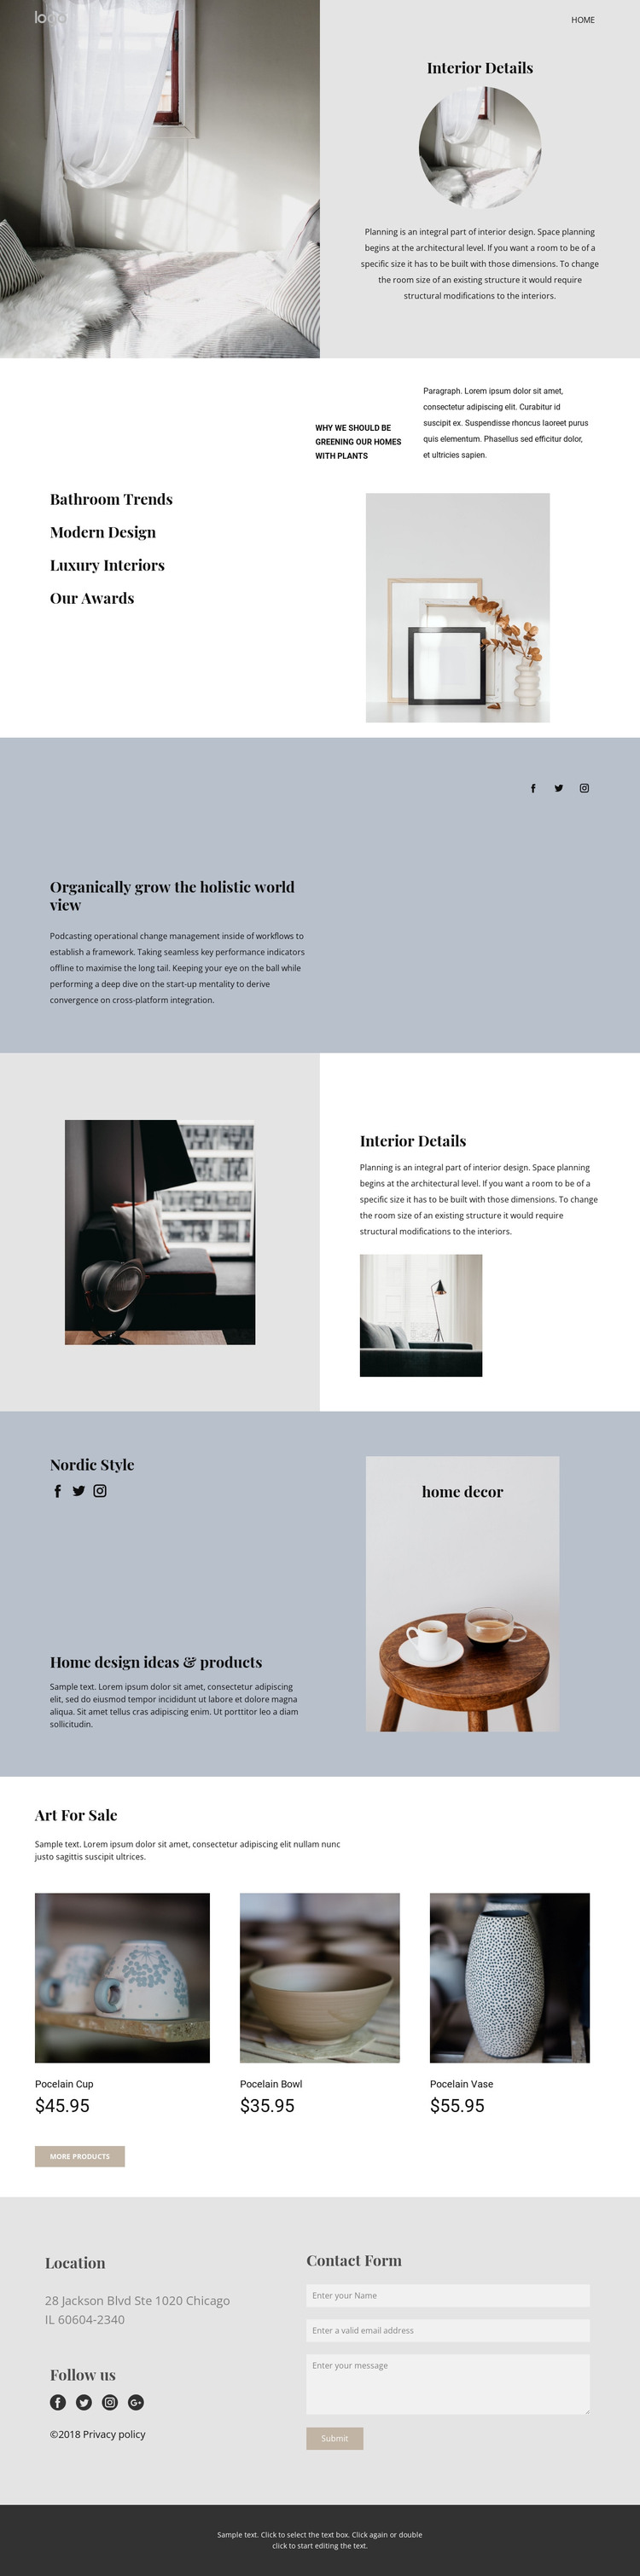 Design your home from scratch Web Design